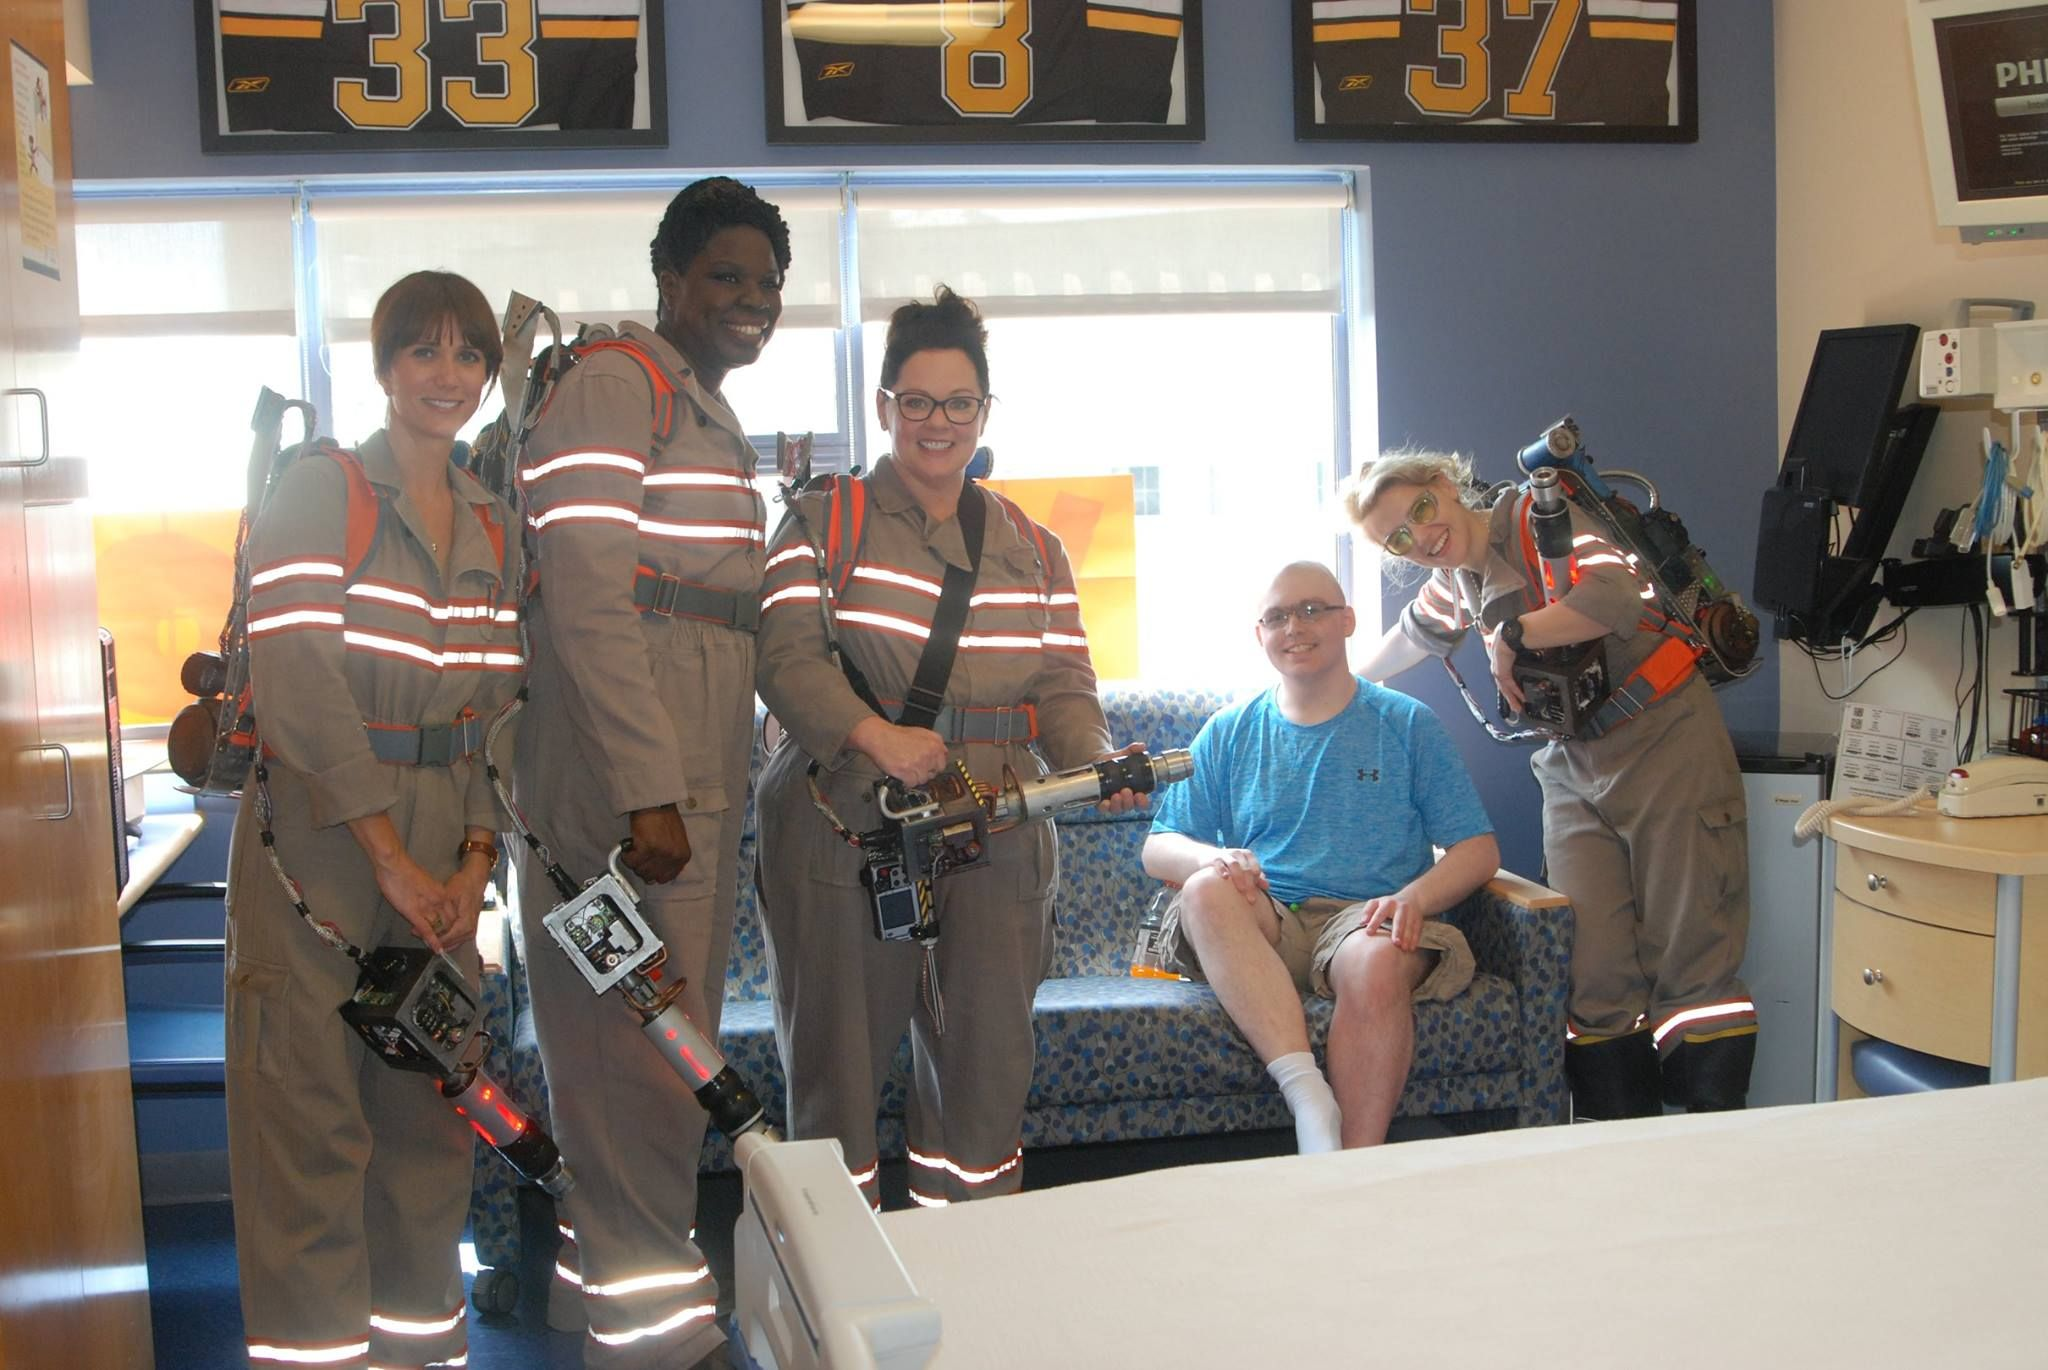 Ghostbusters Cast in Costume to Visit Hospital | Collider